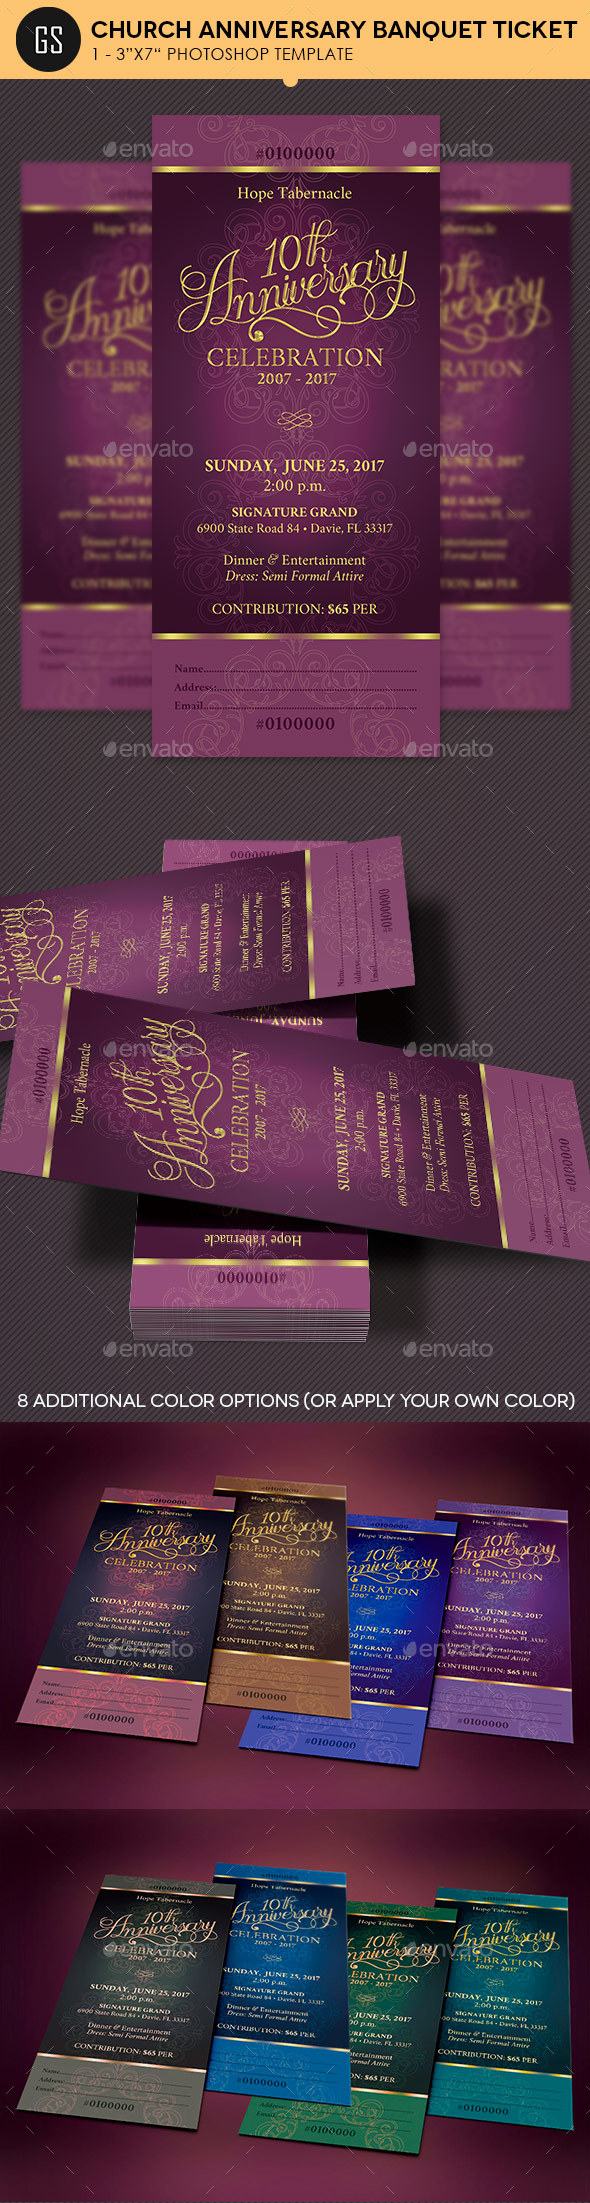 Church Anniversary Banquet Ticket - Miscellaneous Print Templates